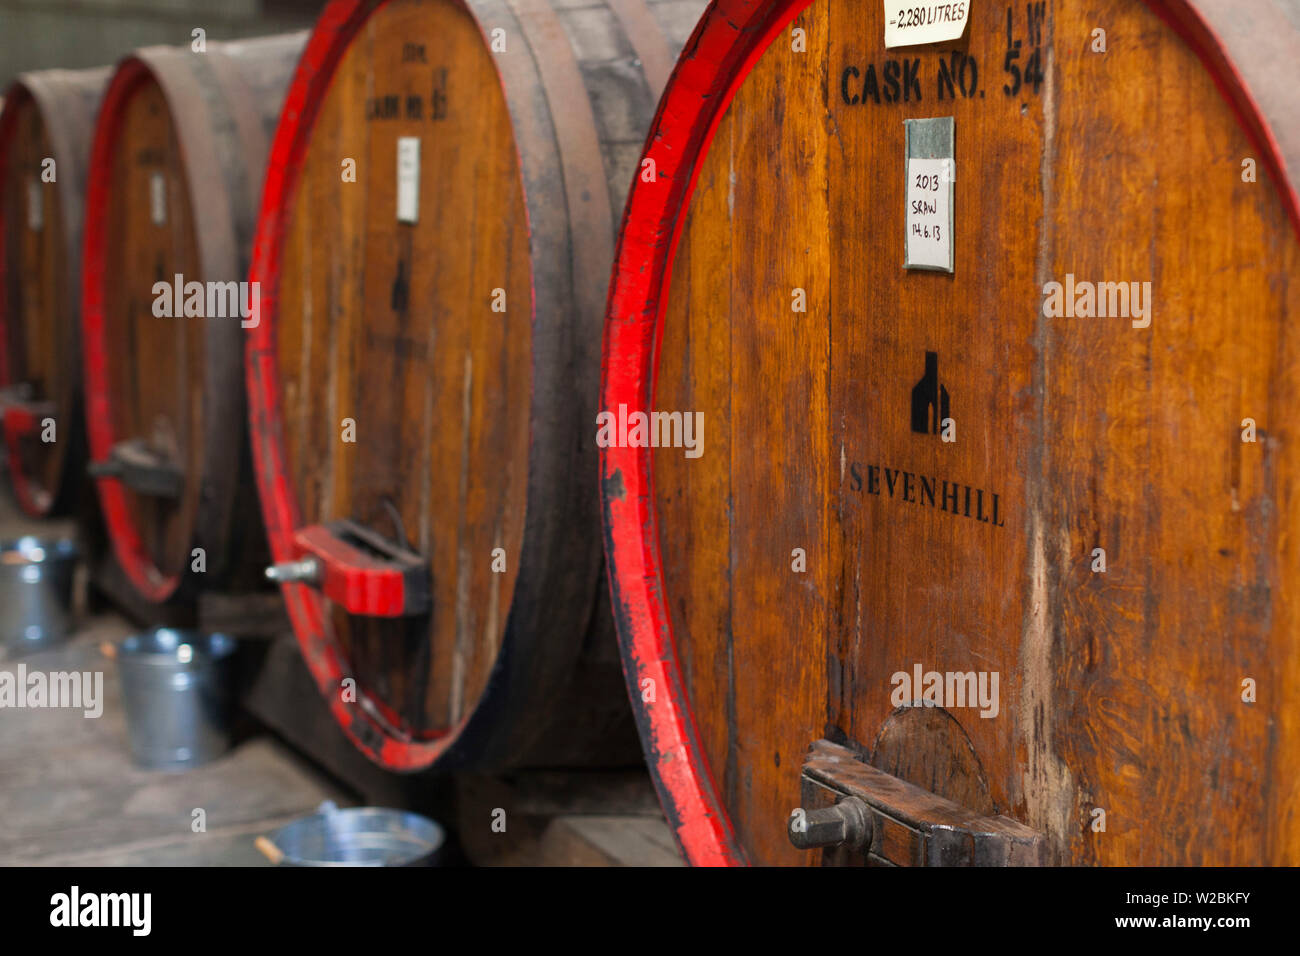 Australia, South Australia, Clare Valley, Sevenhill, Sevenhill Cellars, last remaining Jesuit-owned winery in Australia, founded in 1851, wine casks - Stock Image